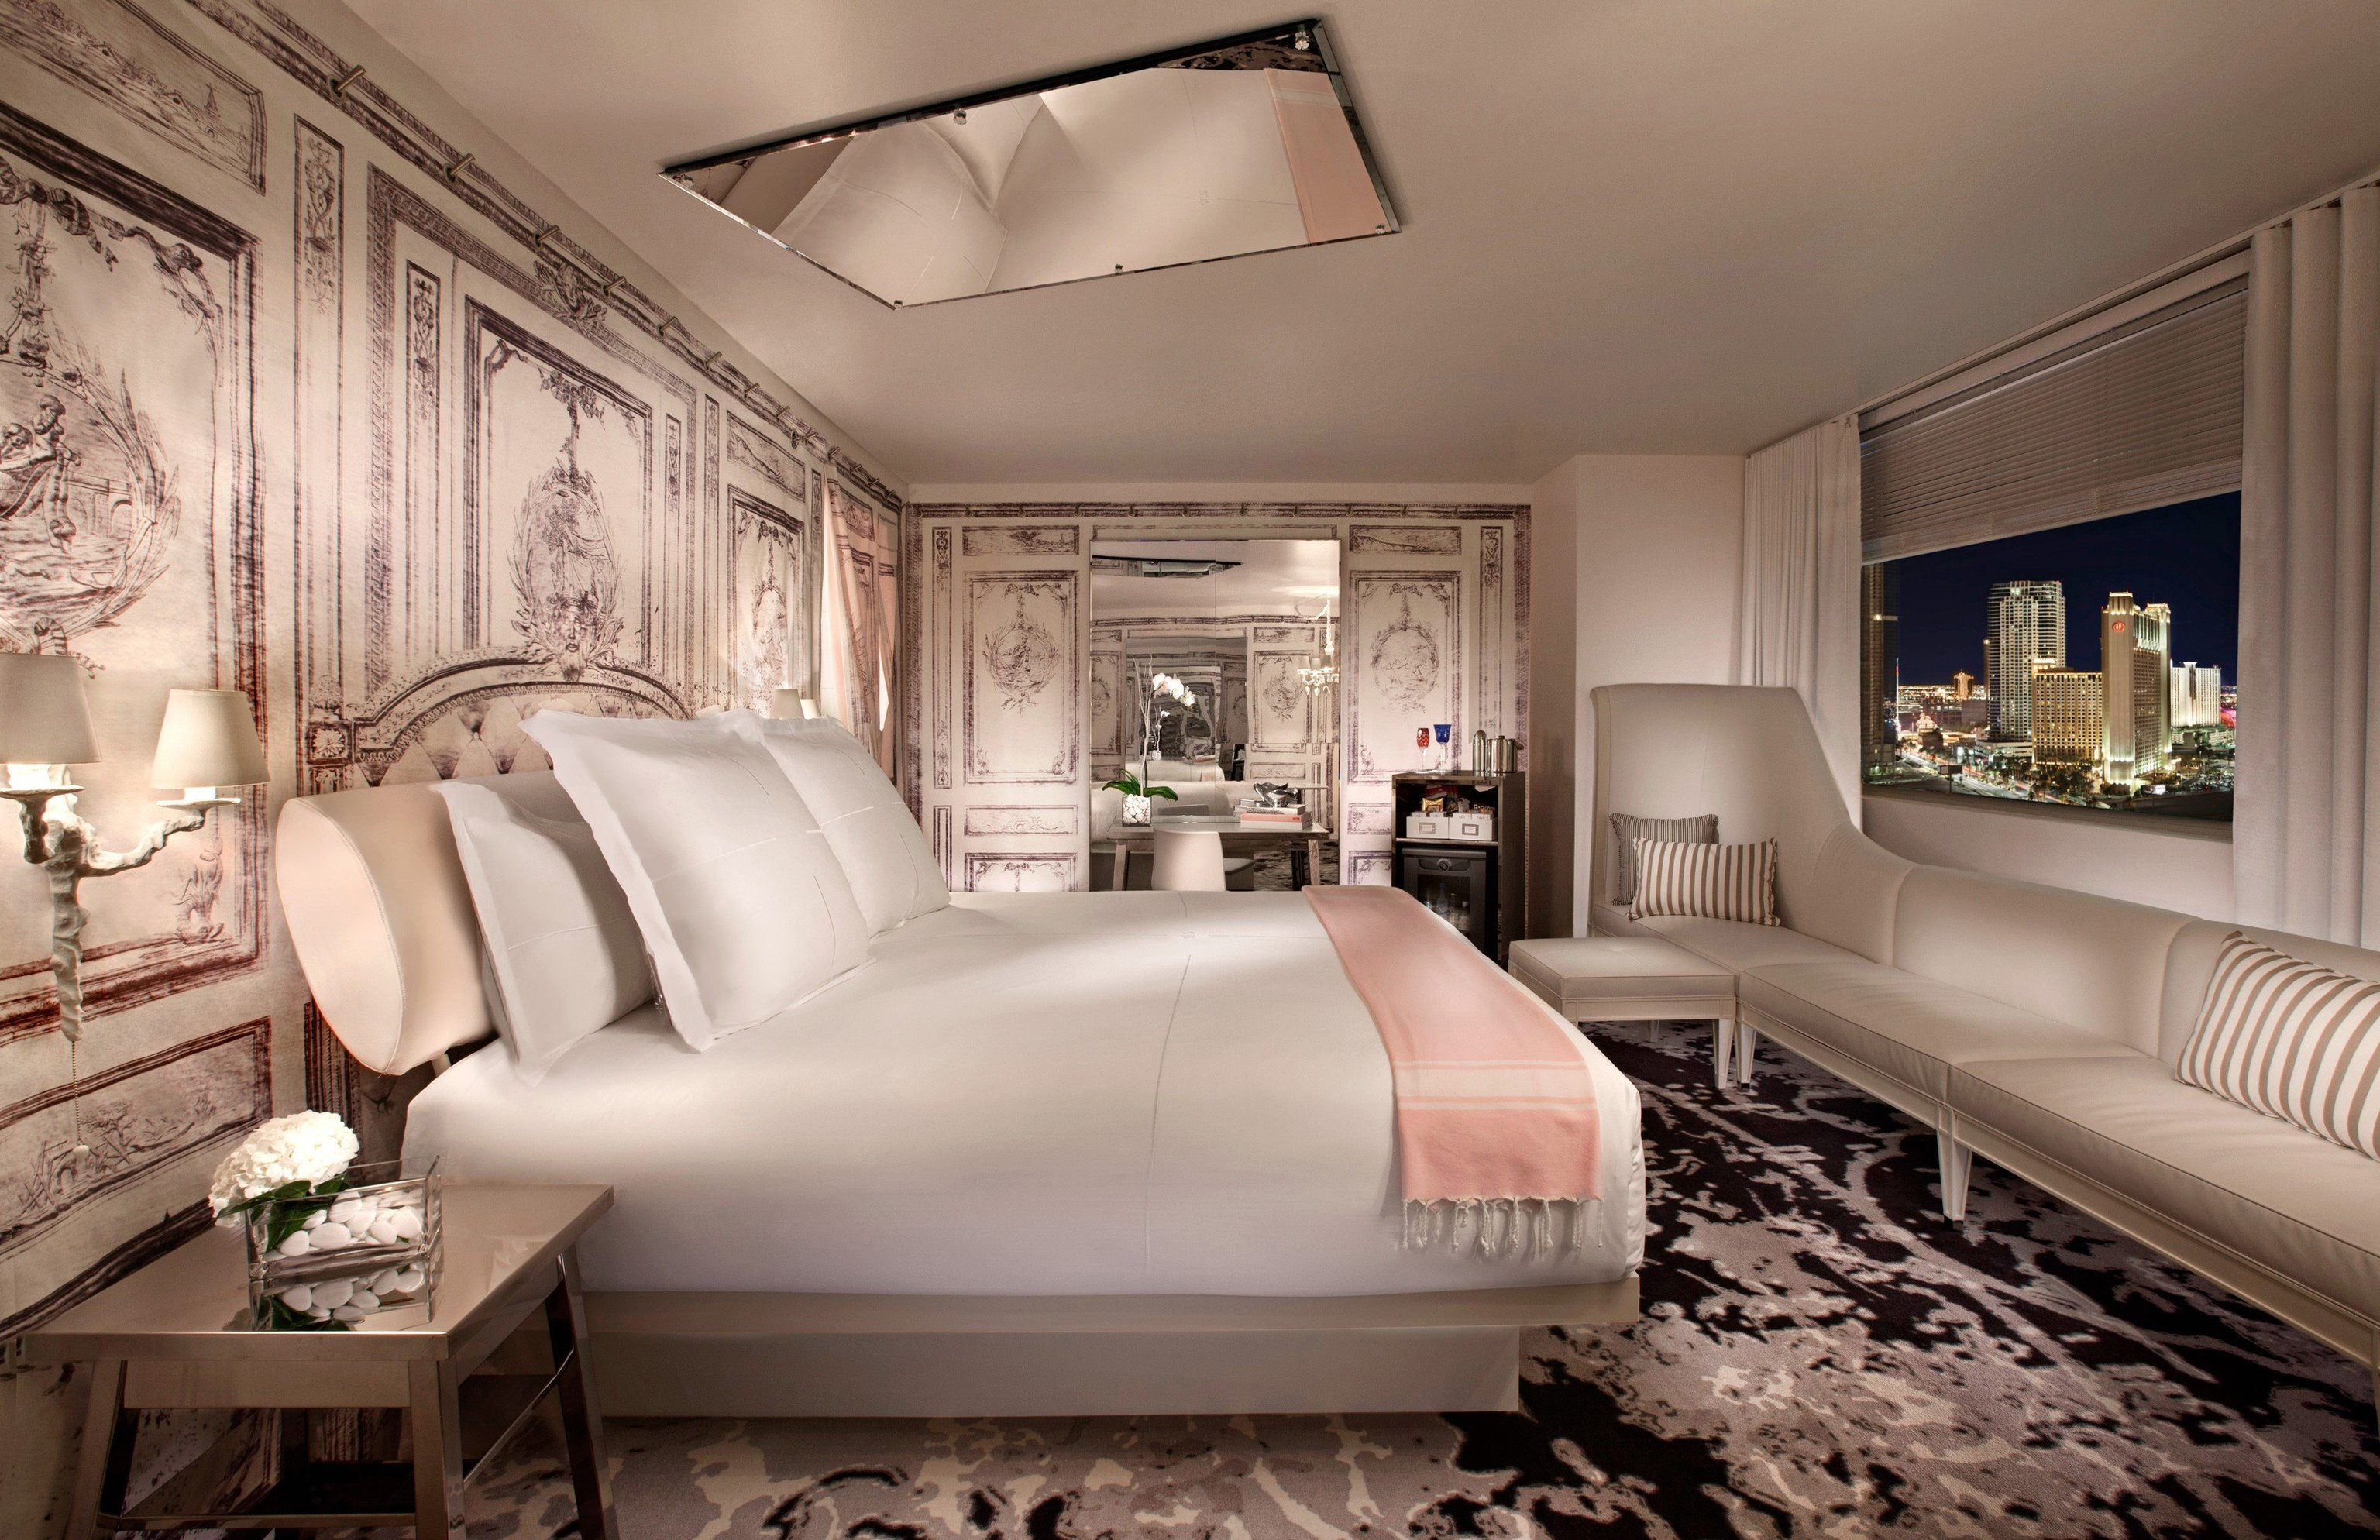 hotels with mirrors on the ceiling in miami - pranksenders